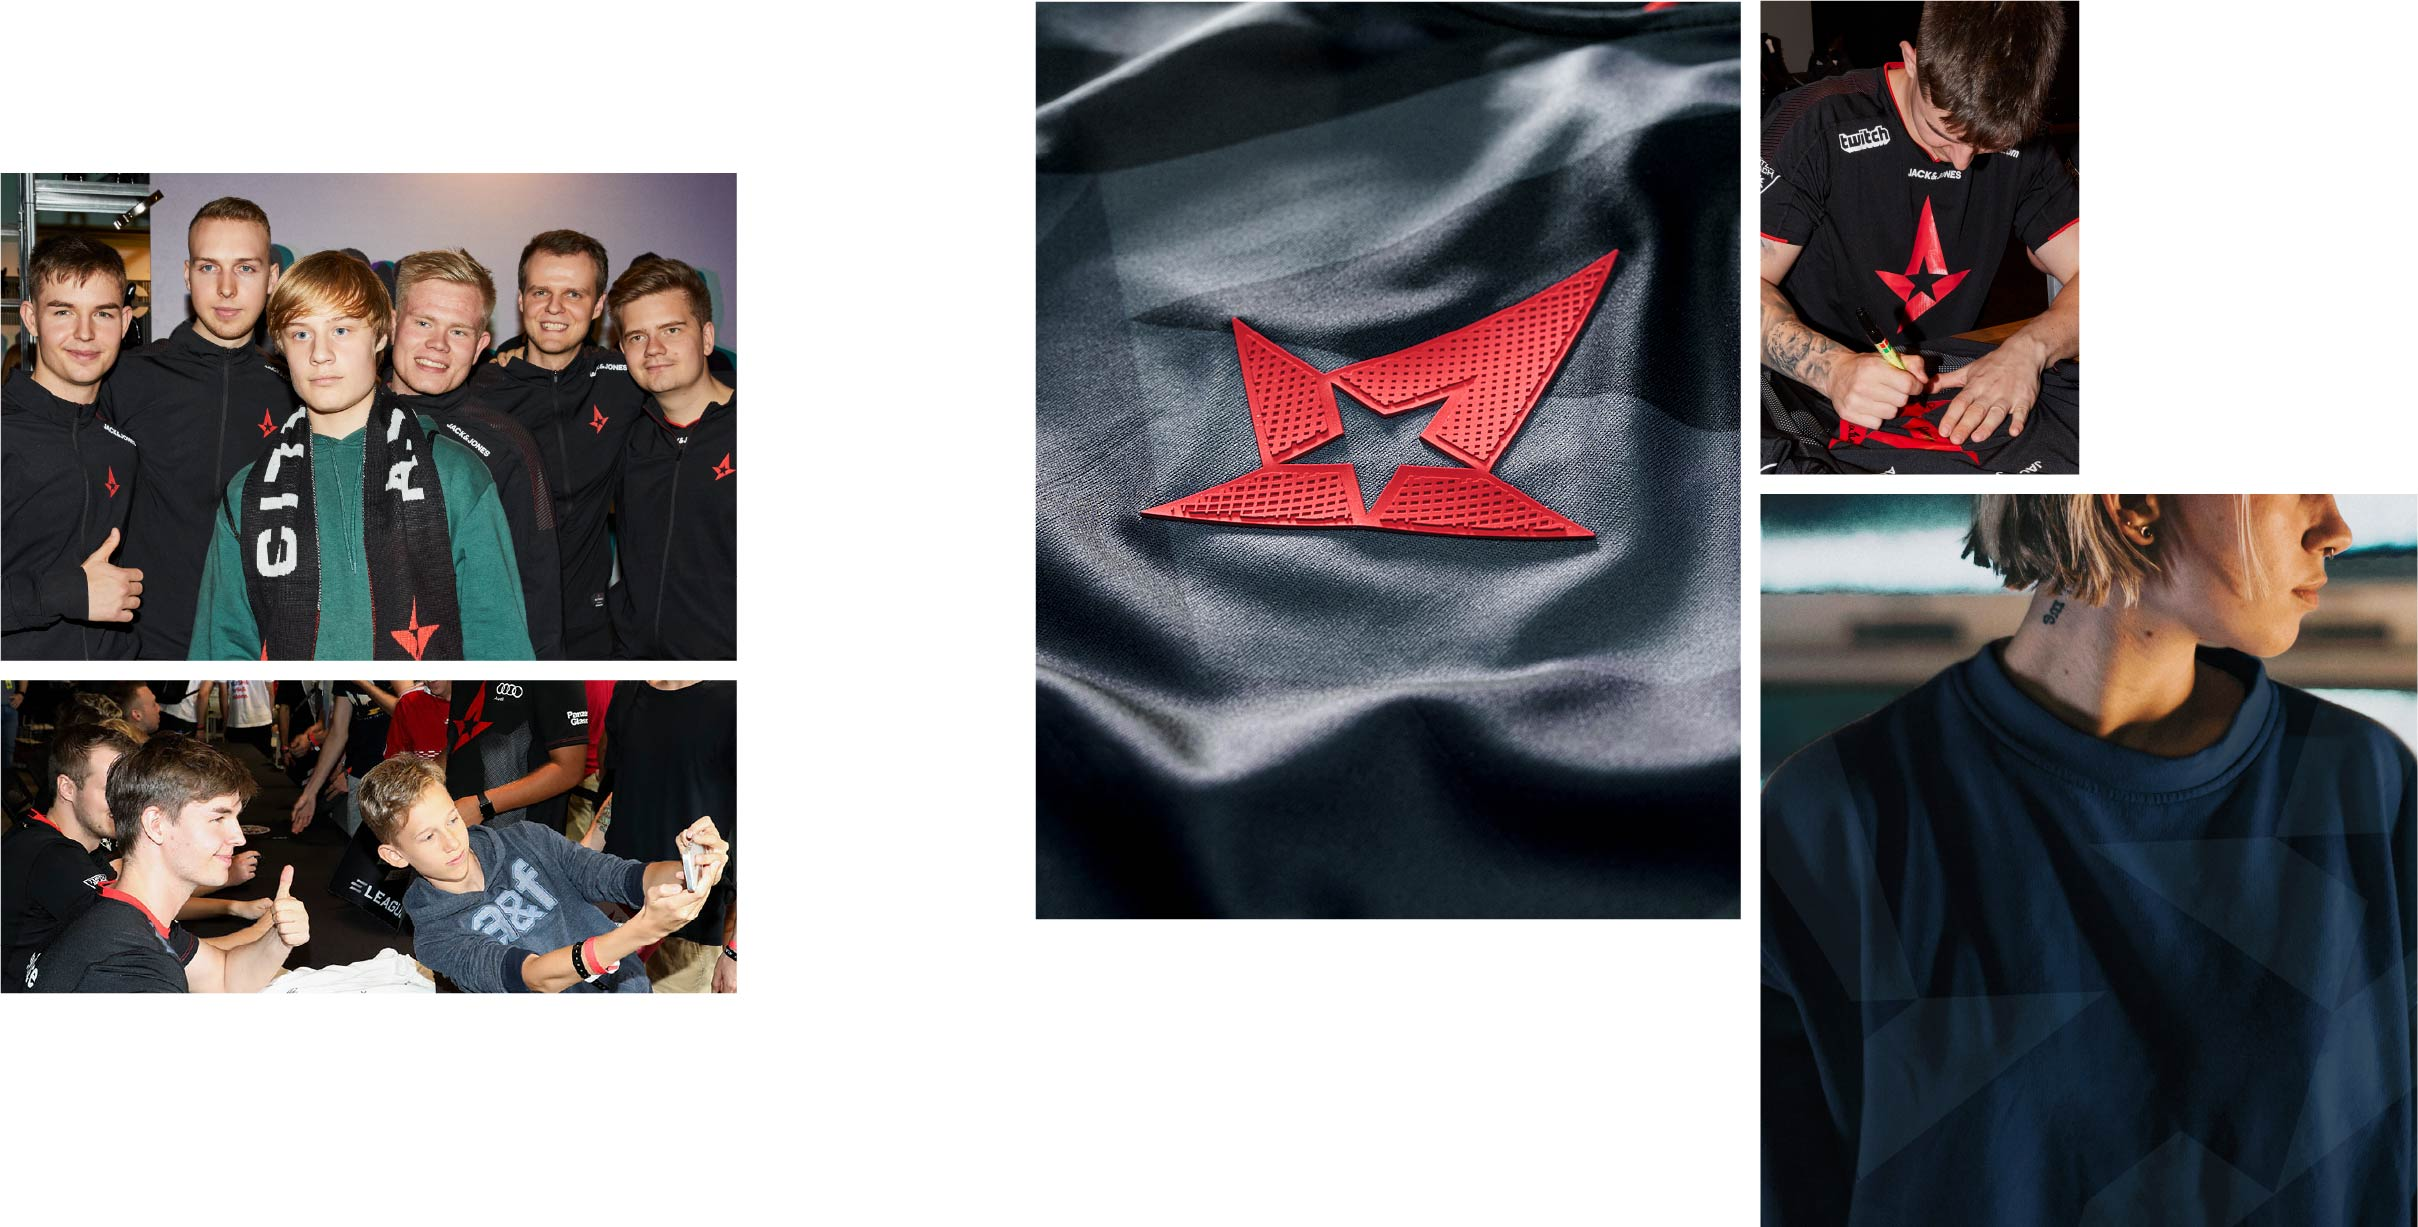 10-b-ASTRALIS-PHOTOS-fans-sequence-01-50